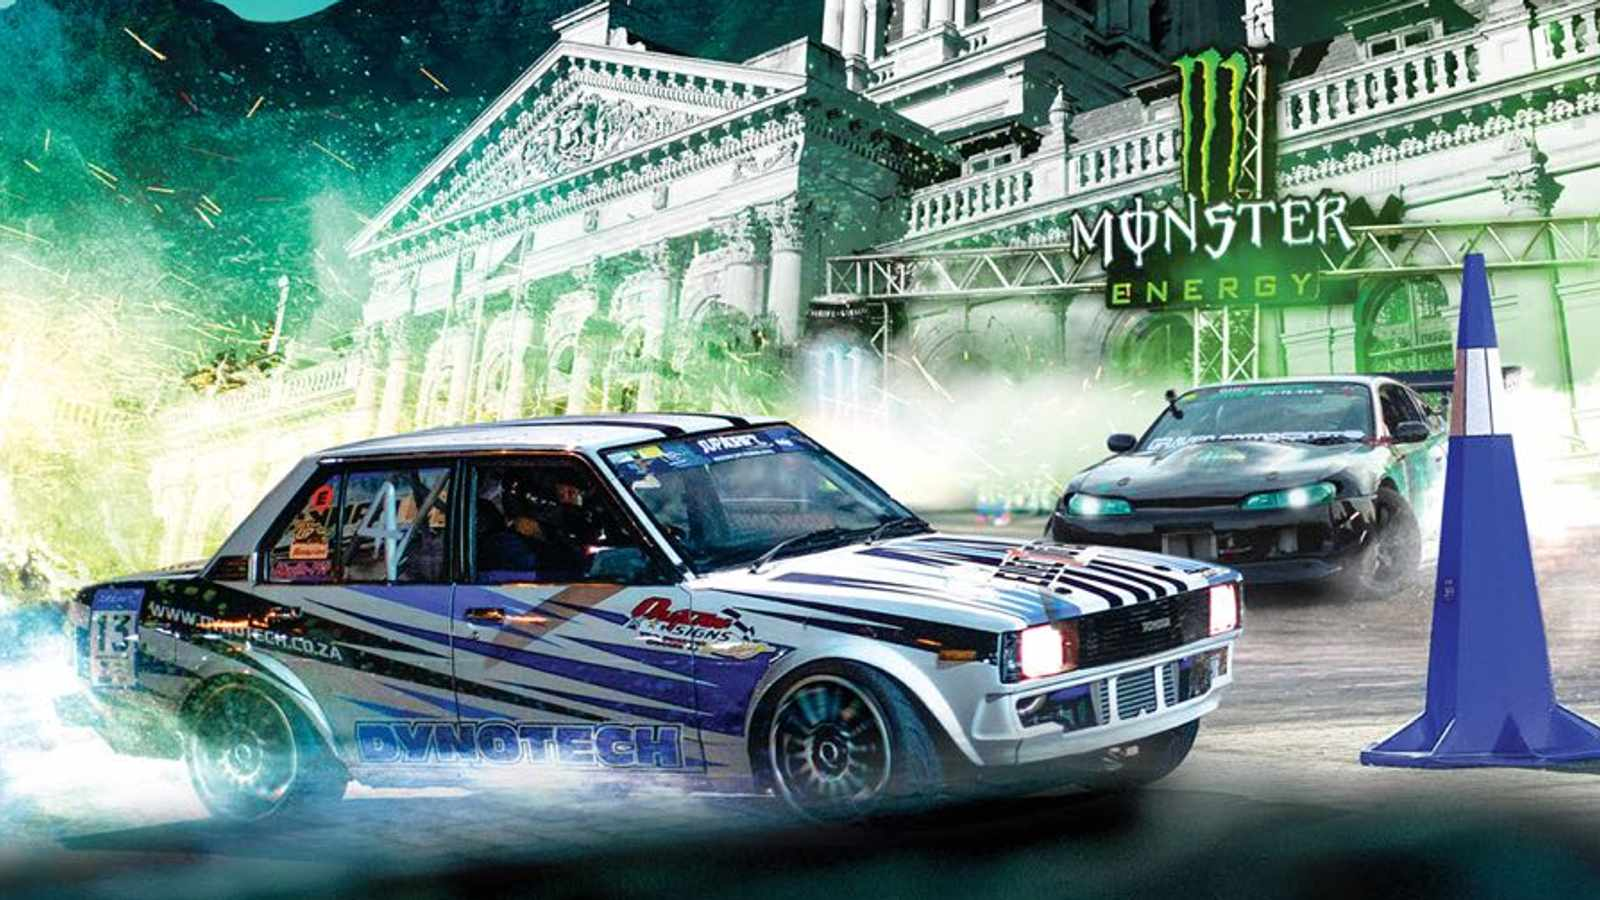 WIN: One of 5 double tickets to attend Drift City